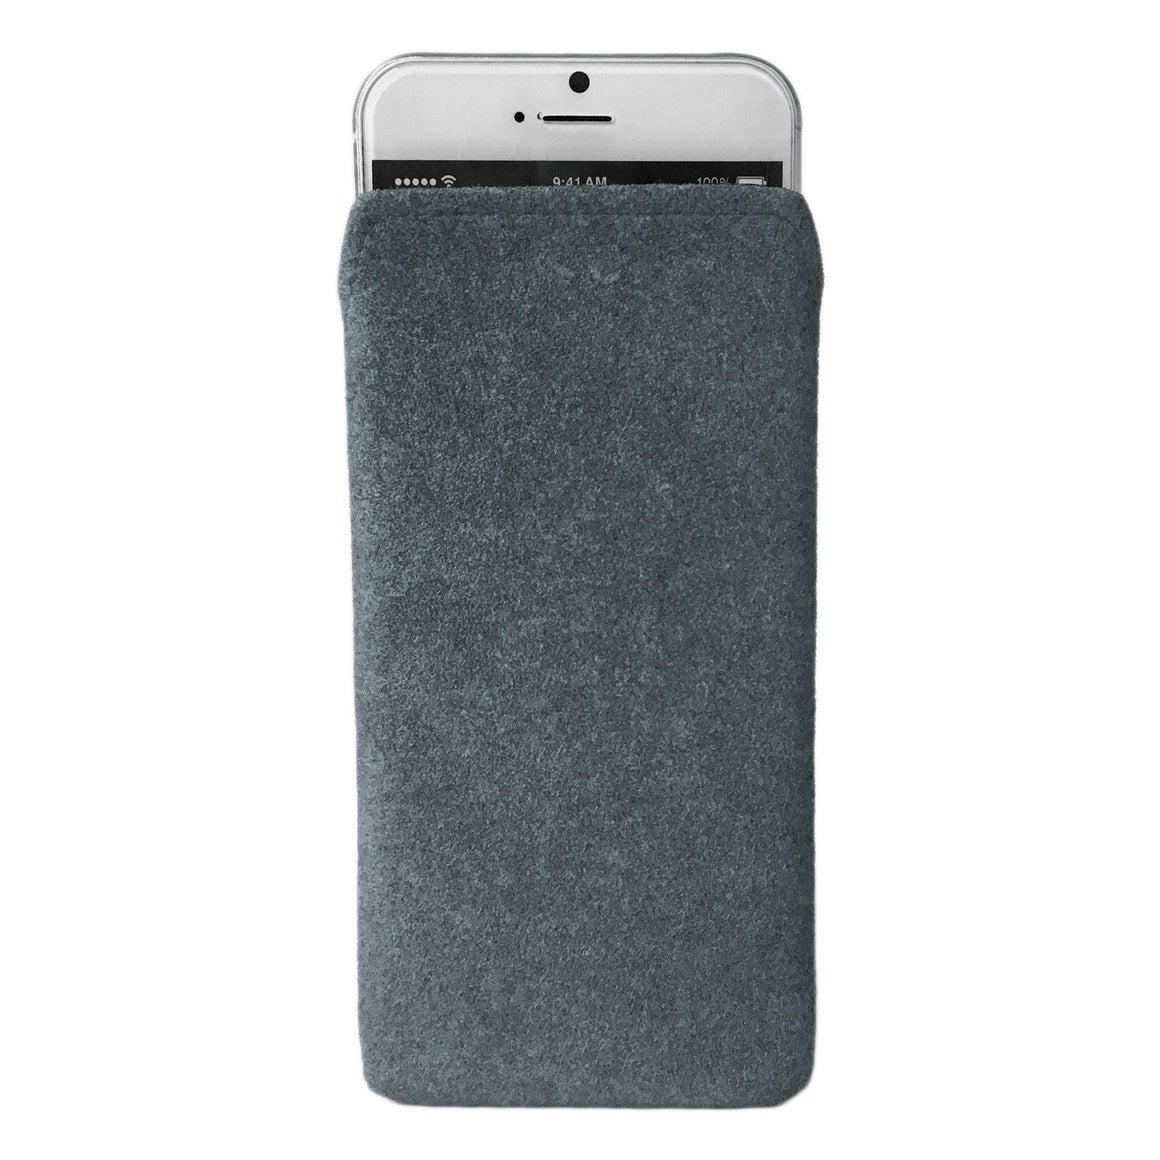 iPhone Alcantara Pouch Pashma Greys - Wrappers UK